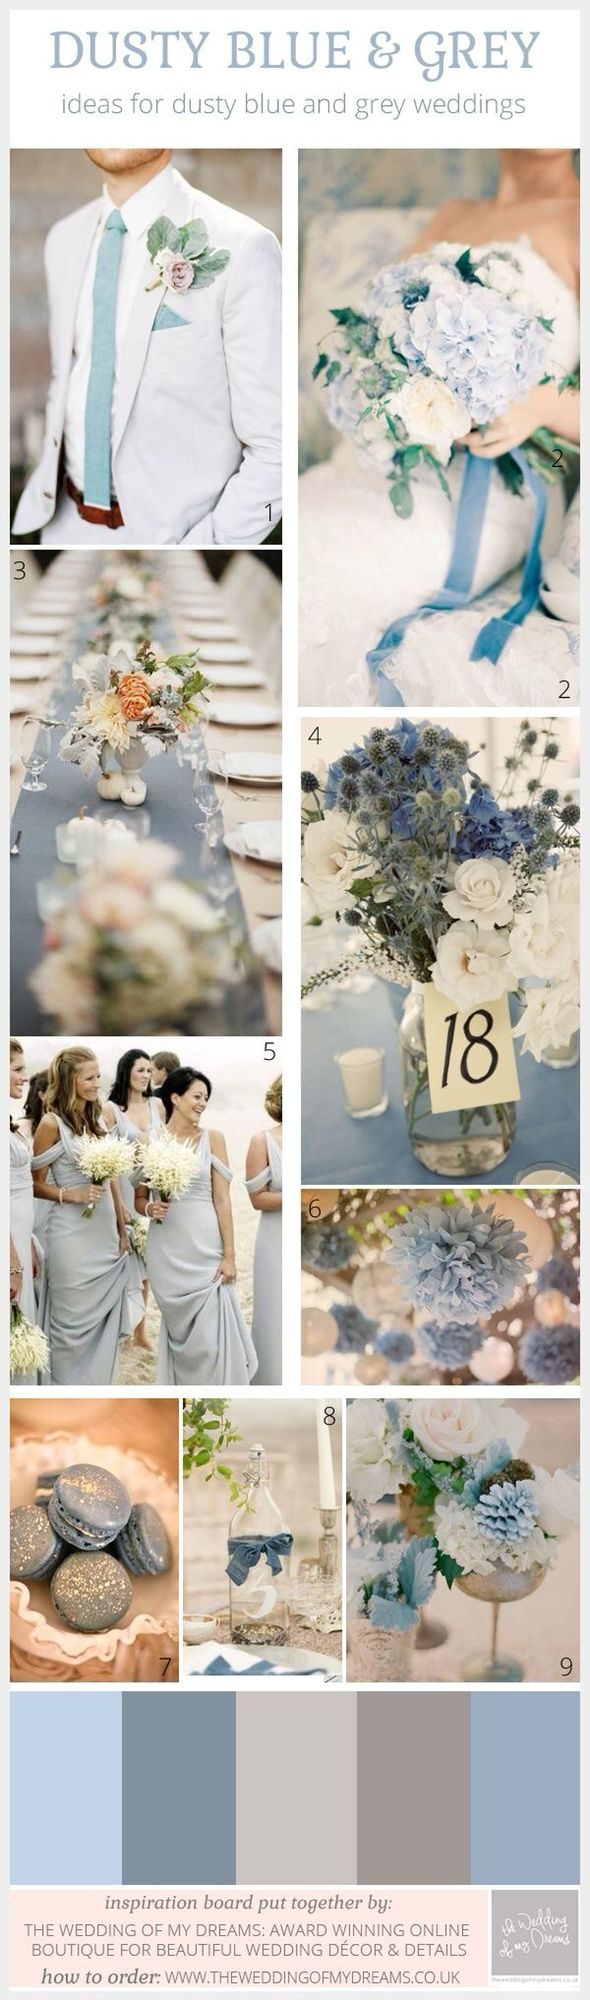 Pin by Lina N.Wakil on Blue and Cream,Sand | Pinterest | Wedding and ...